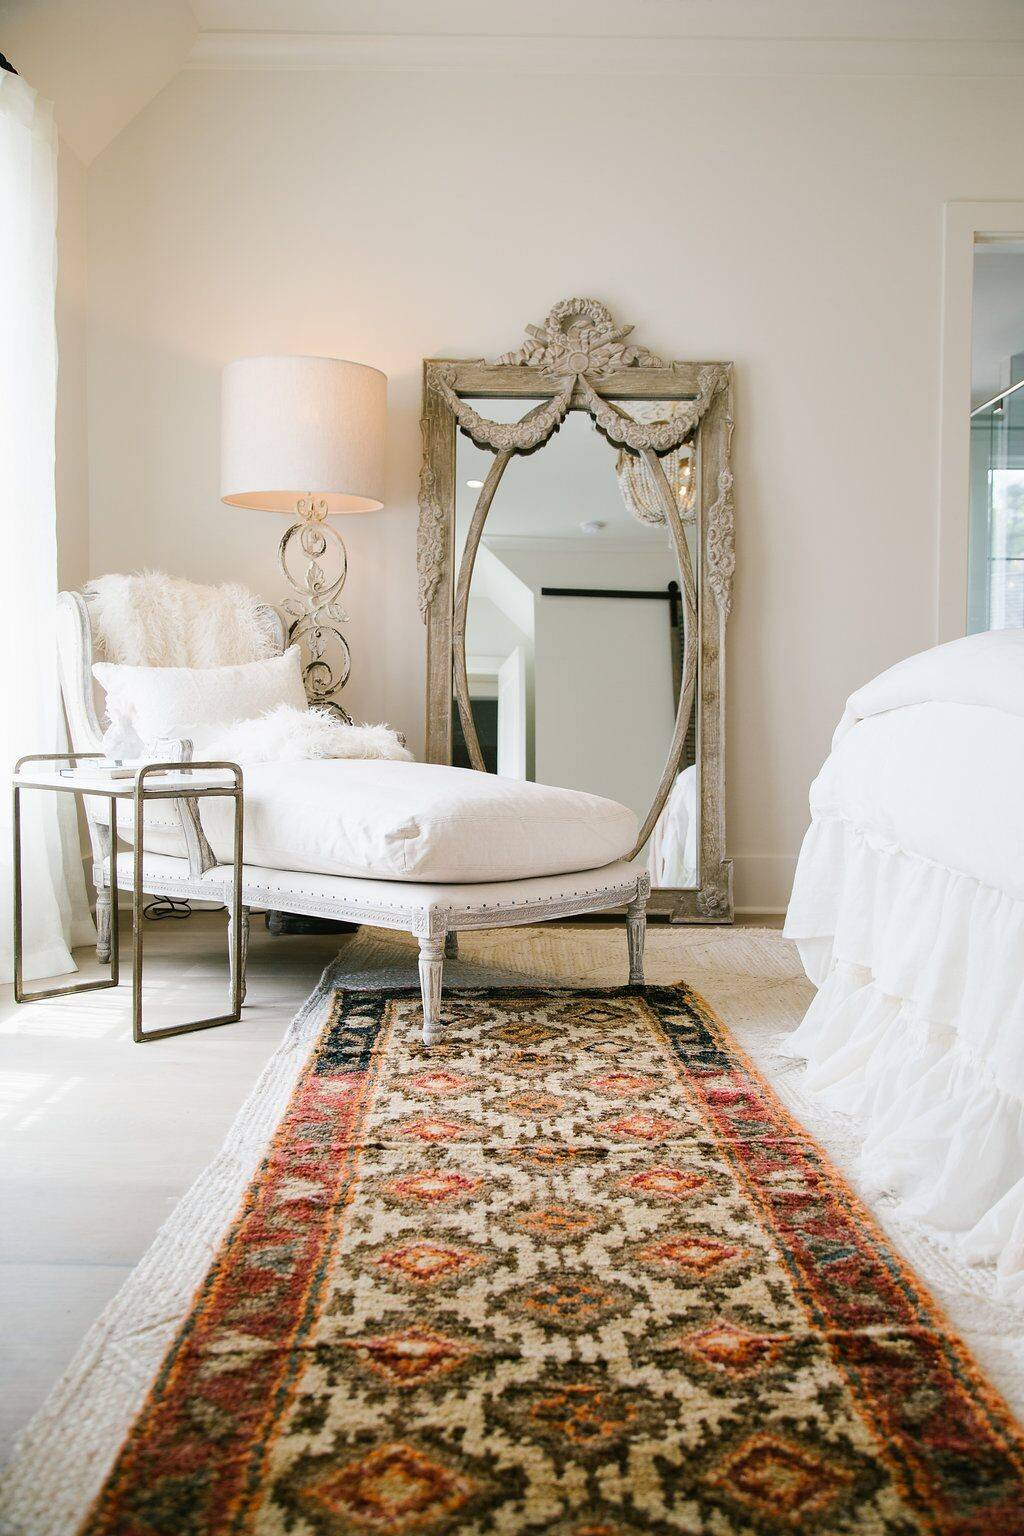 Place A Chaise Lounge At The Corner Of Bedroom